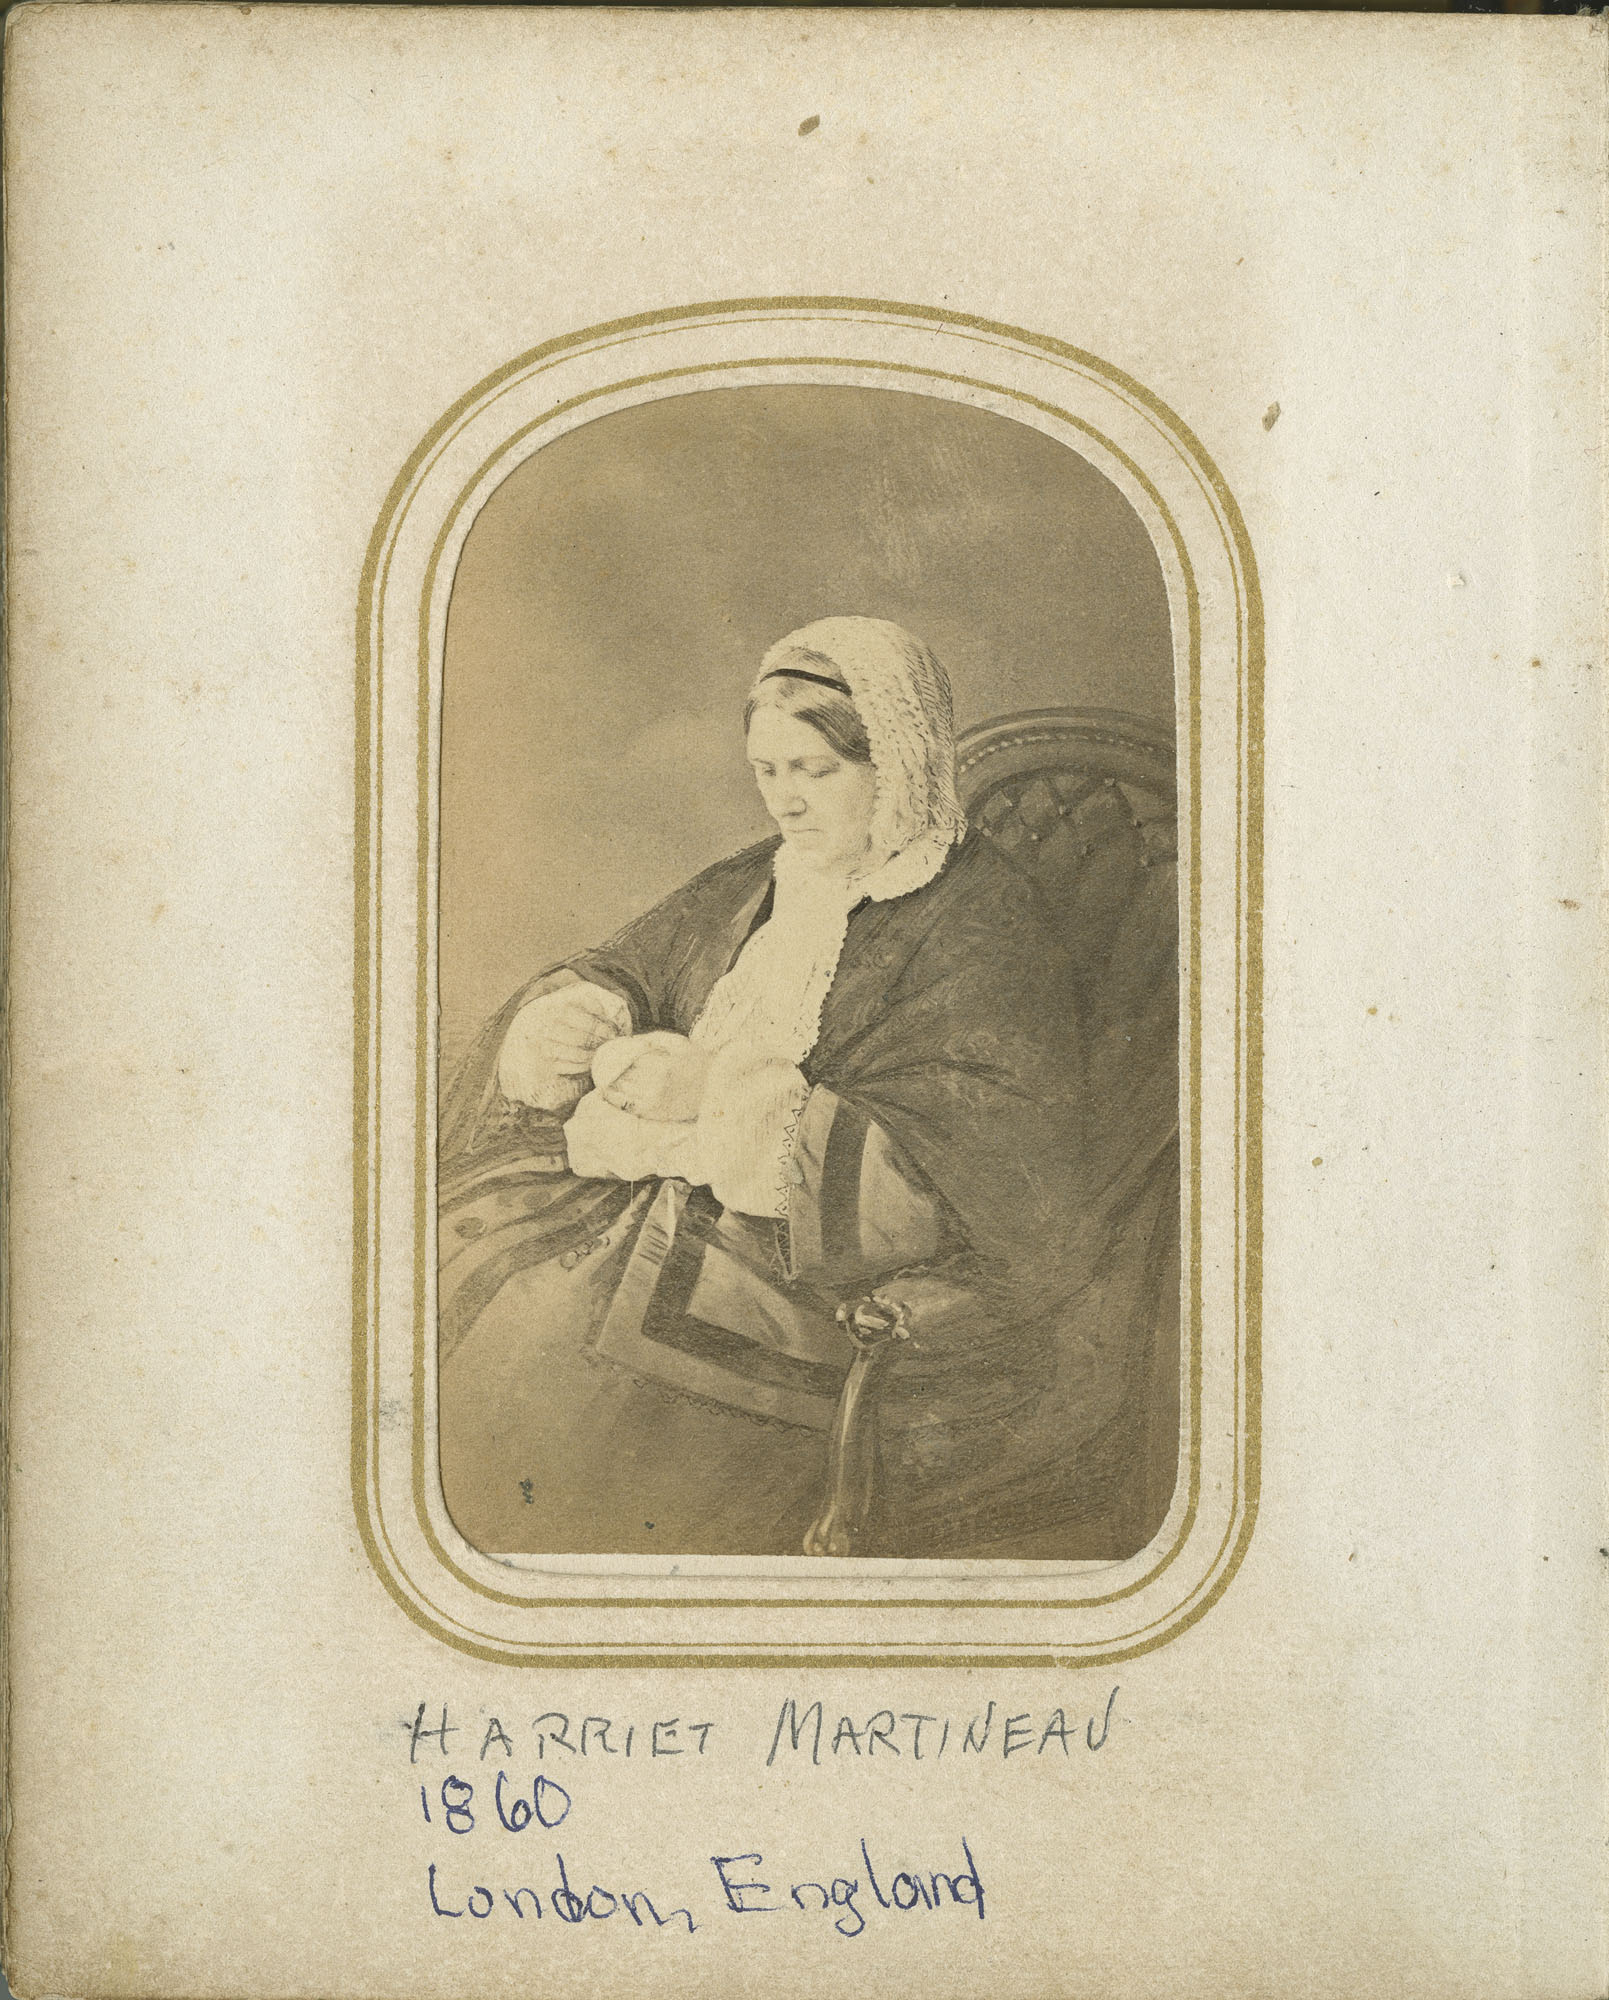 35. Image of Harriet Martineau